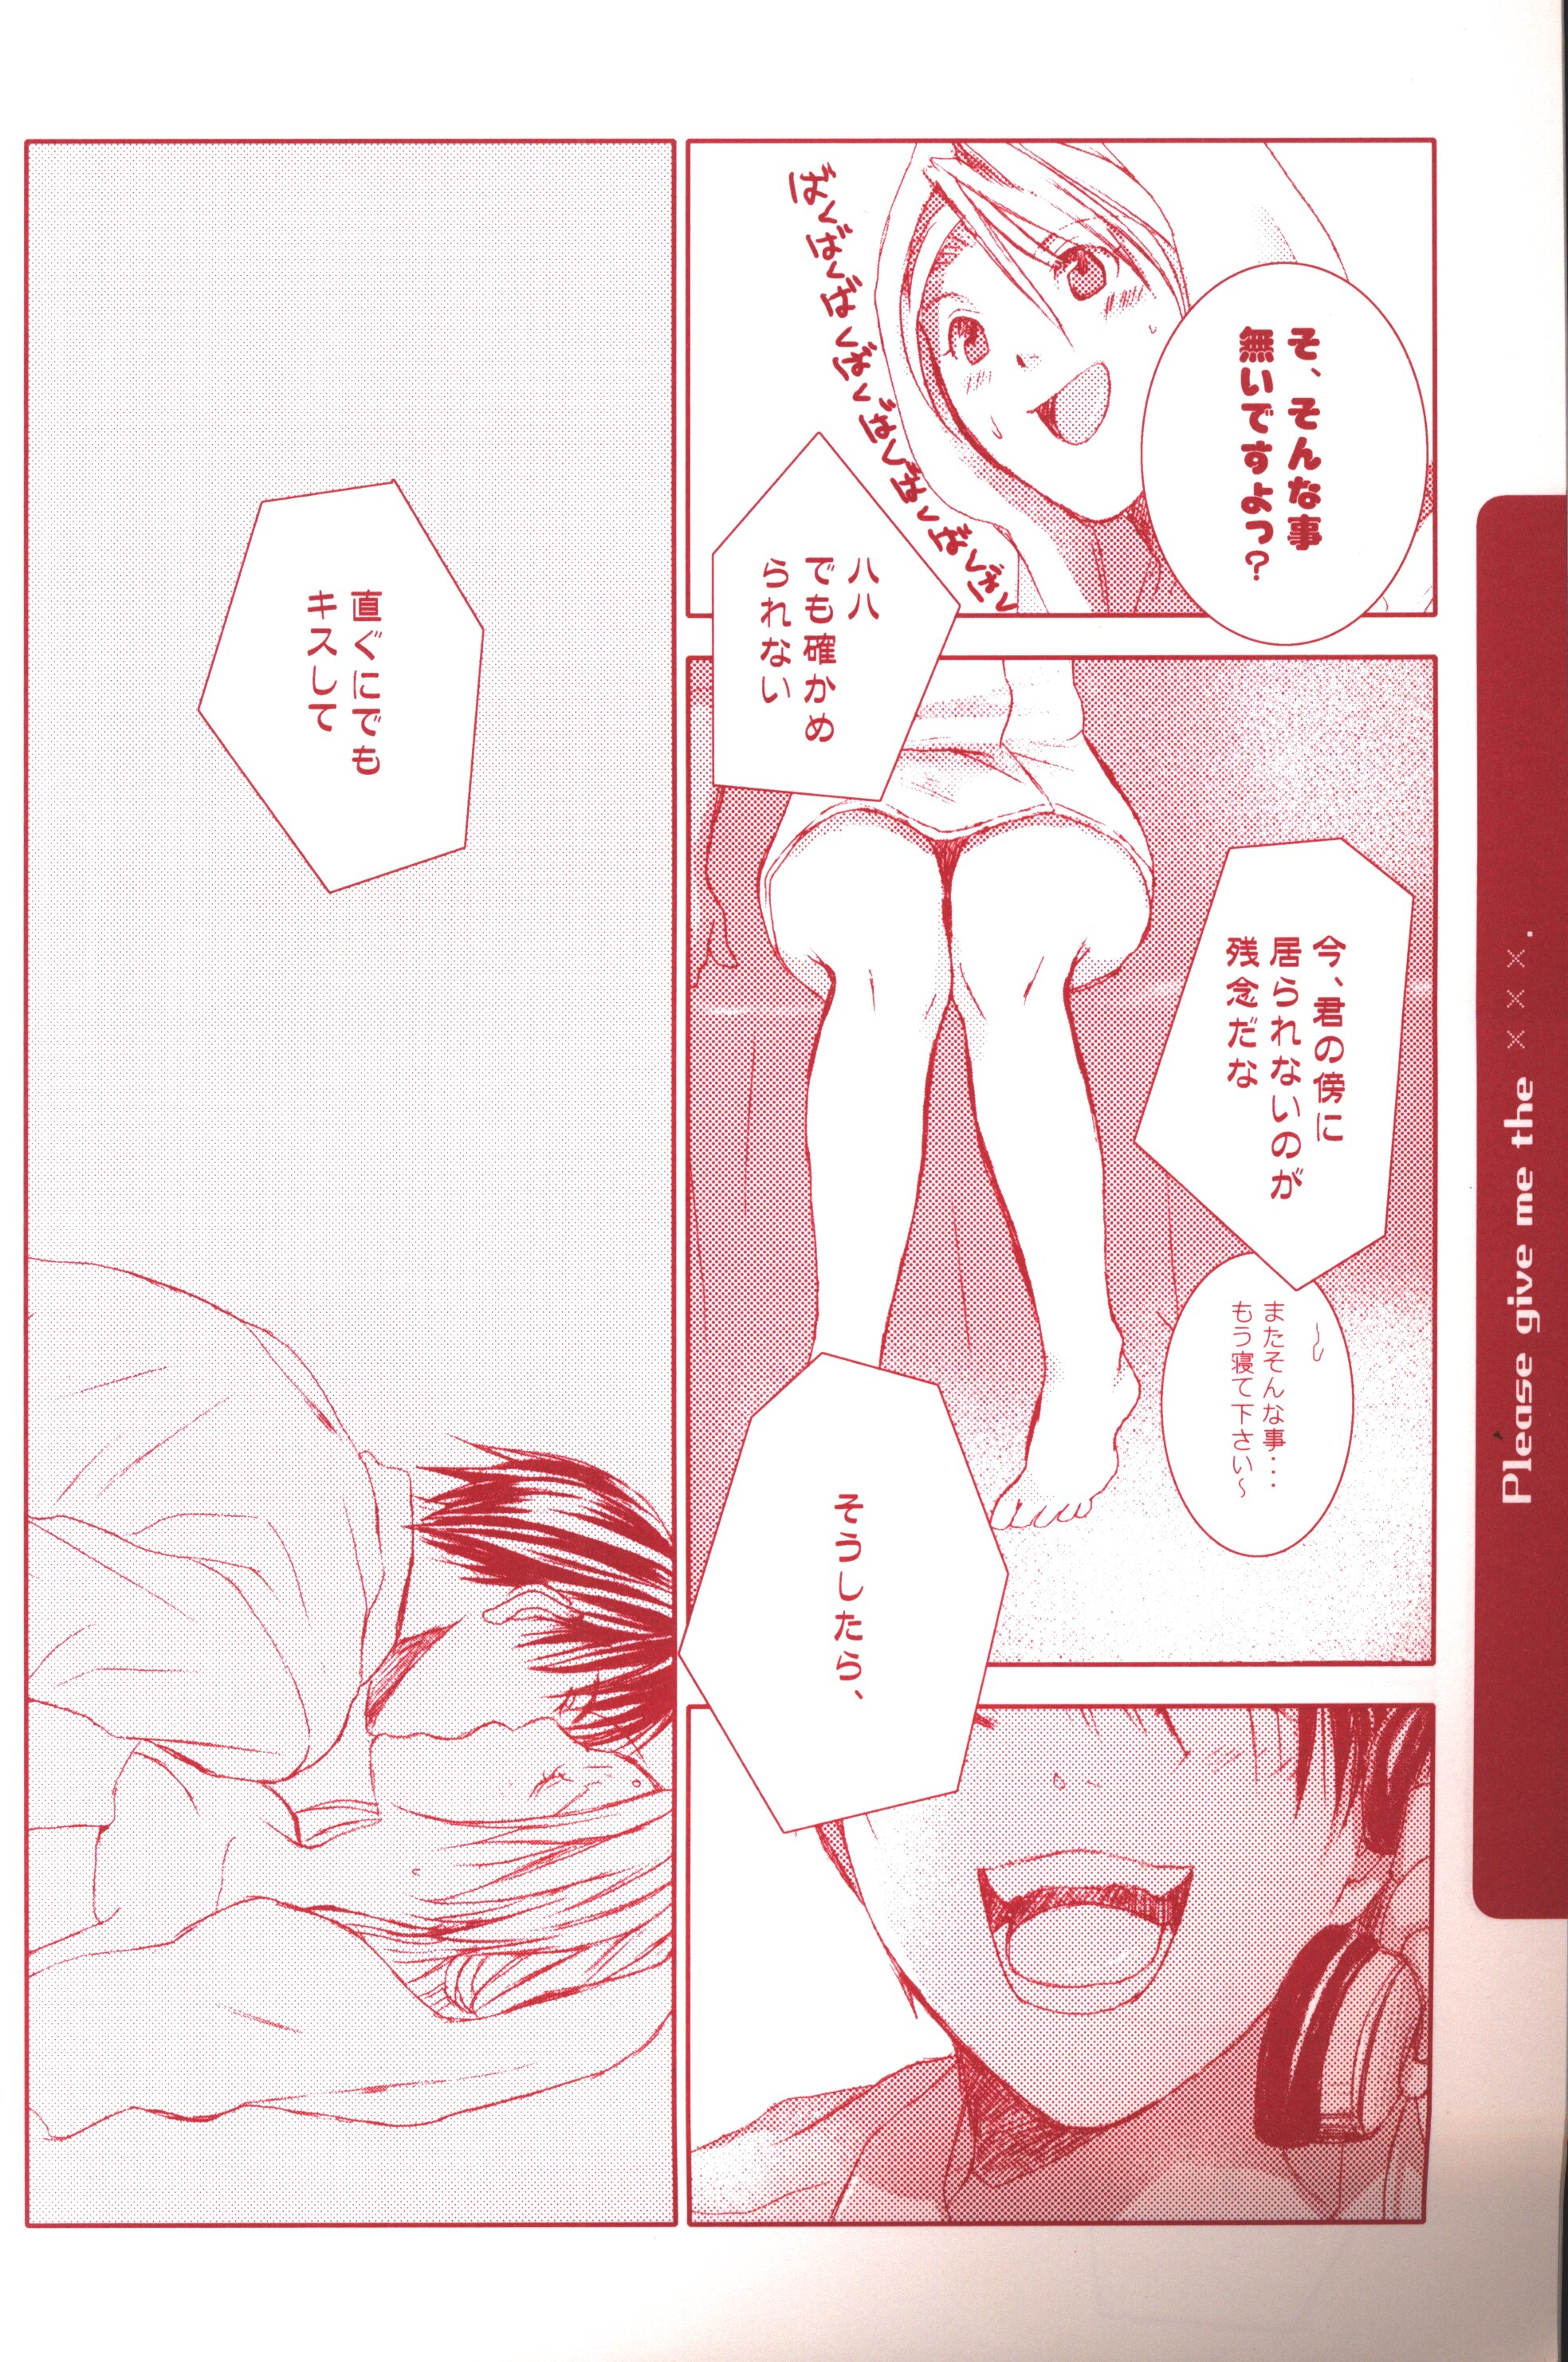 Doujinshi - Fullmetal Alchemist / Roy Mustang x Riza Hawkeye (Please give me the ×××) / USA Gunbu